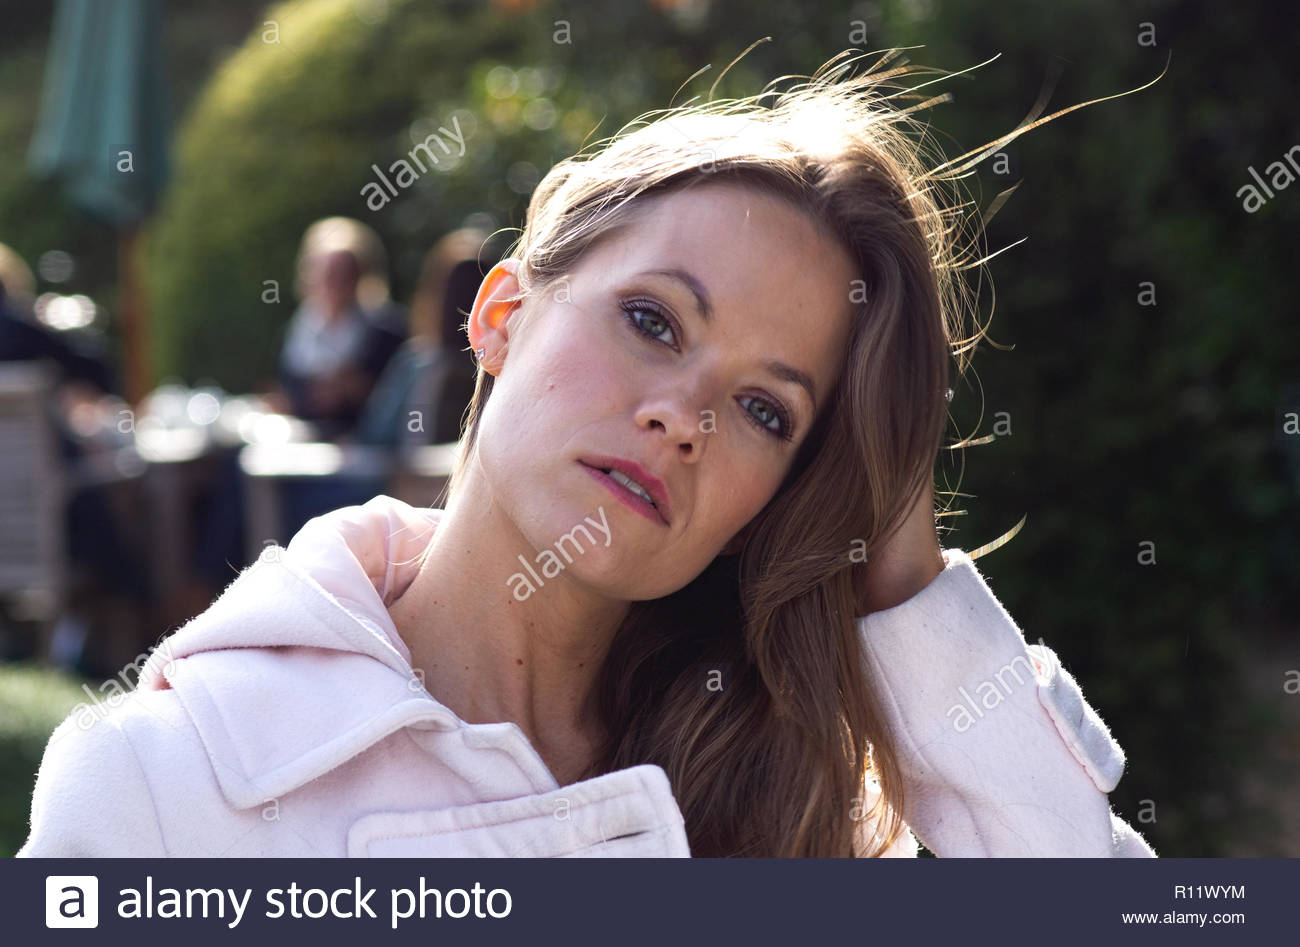 Female Model - Stock Image